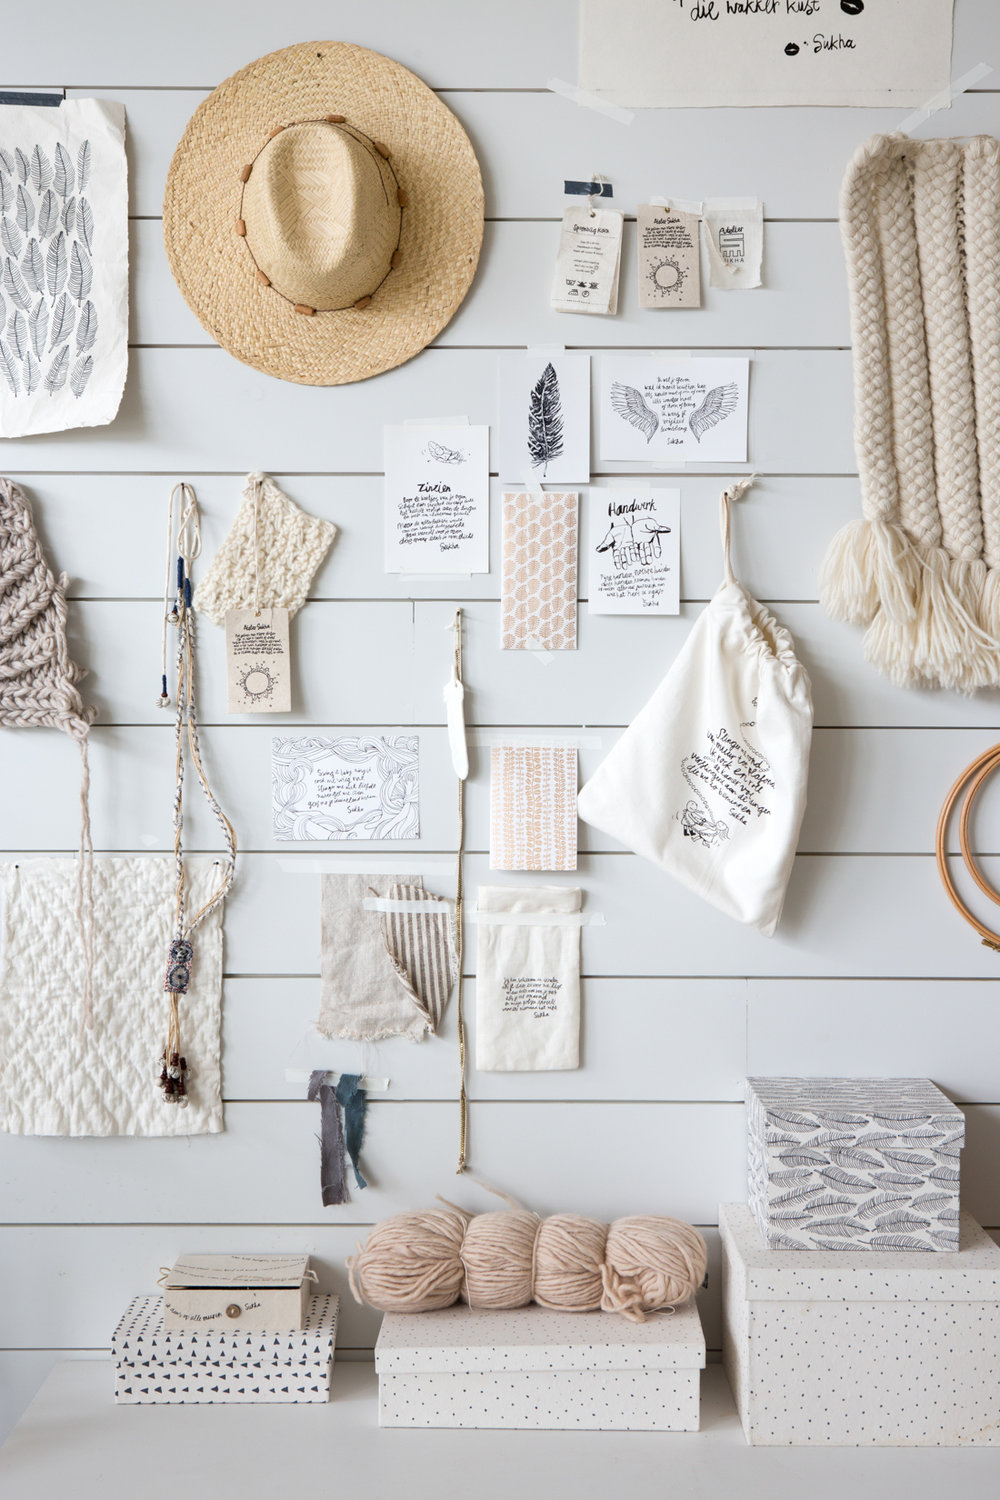 Natural, Organic and Simple: The Home + Shop of Sukha in Amsterdam